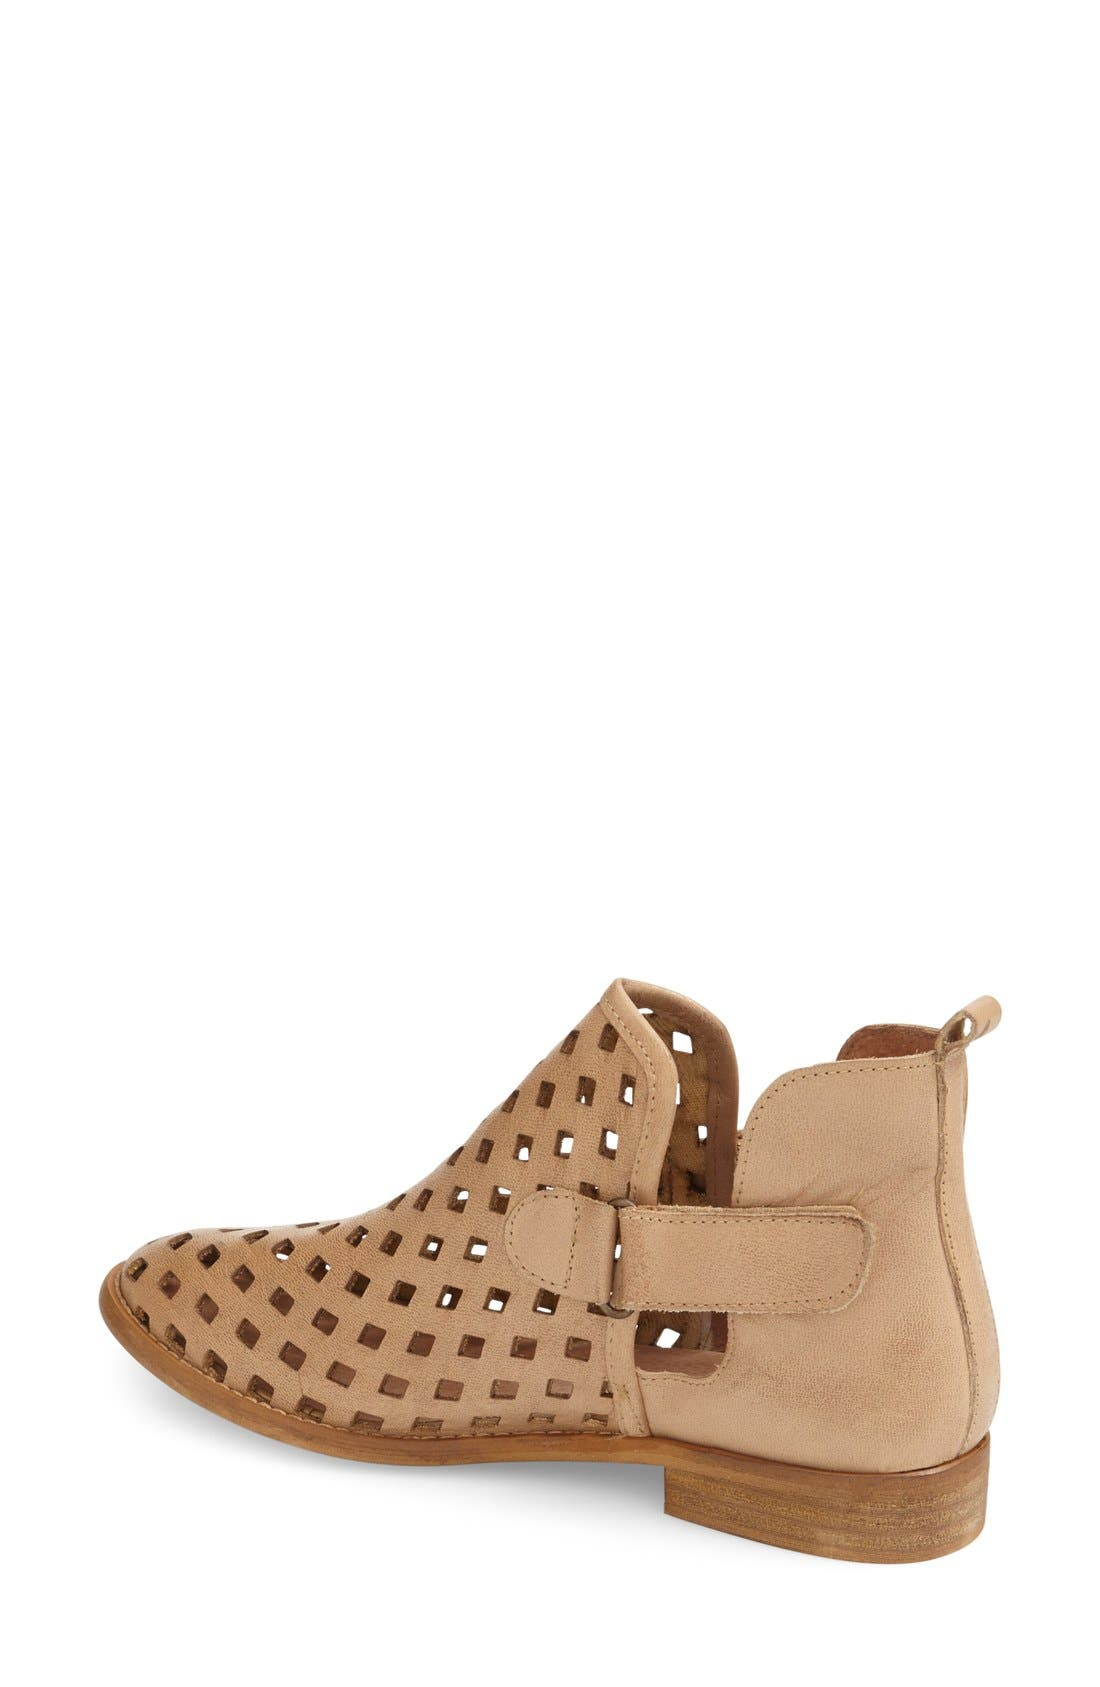 'Caila' Perforated Bootie,                             Alternate thumbnail 3, color,                             201